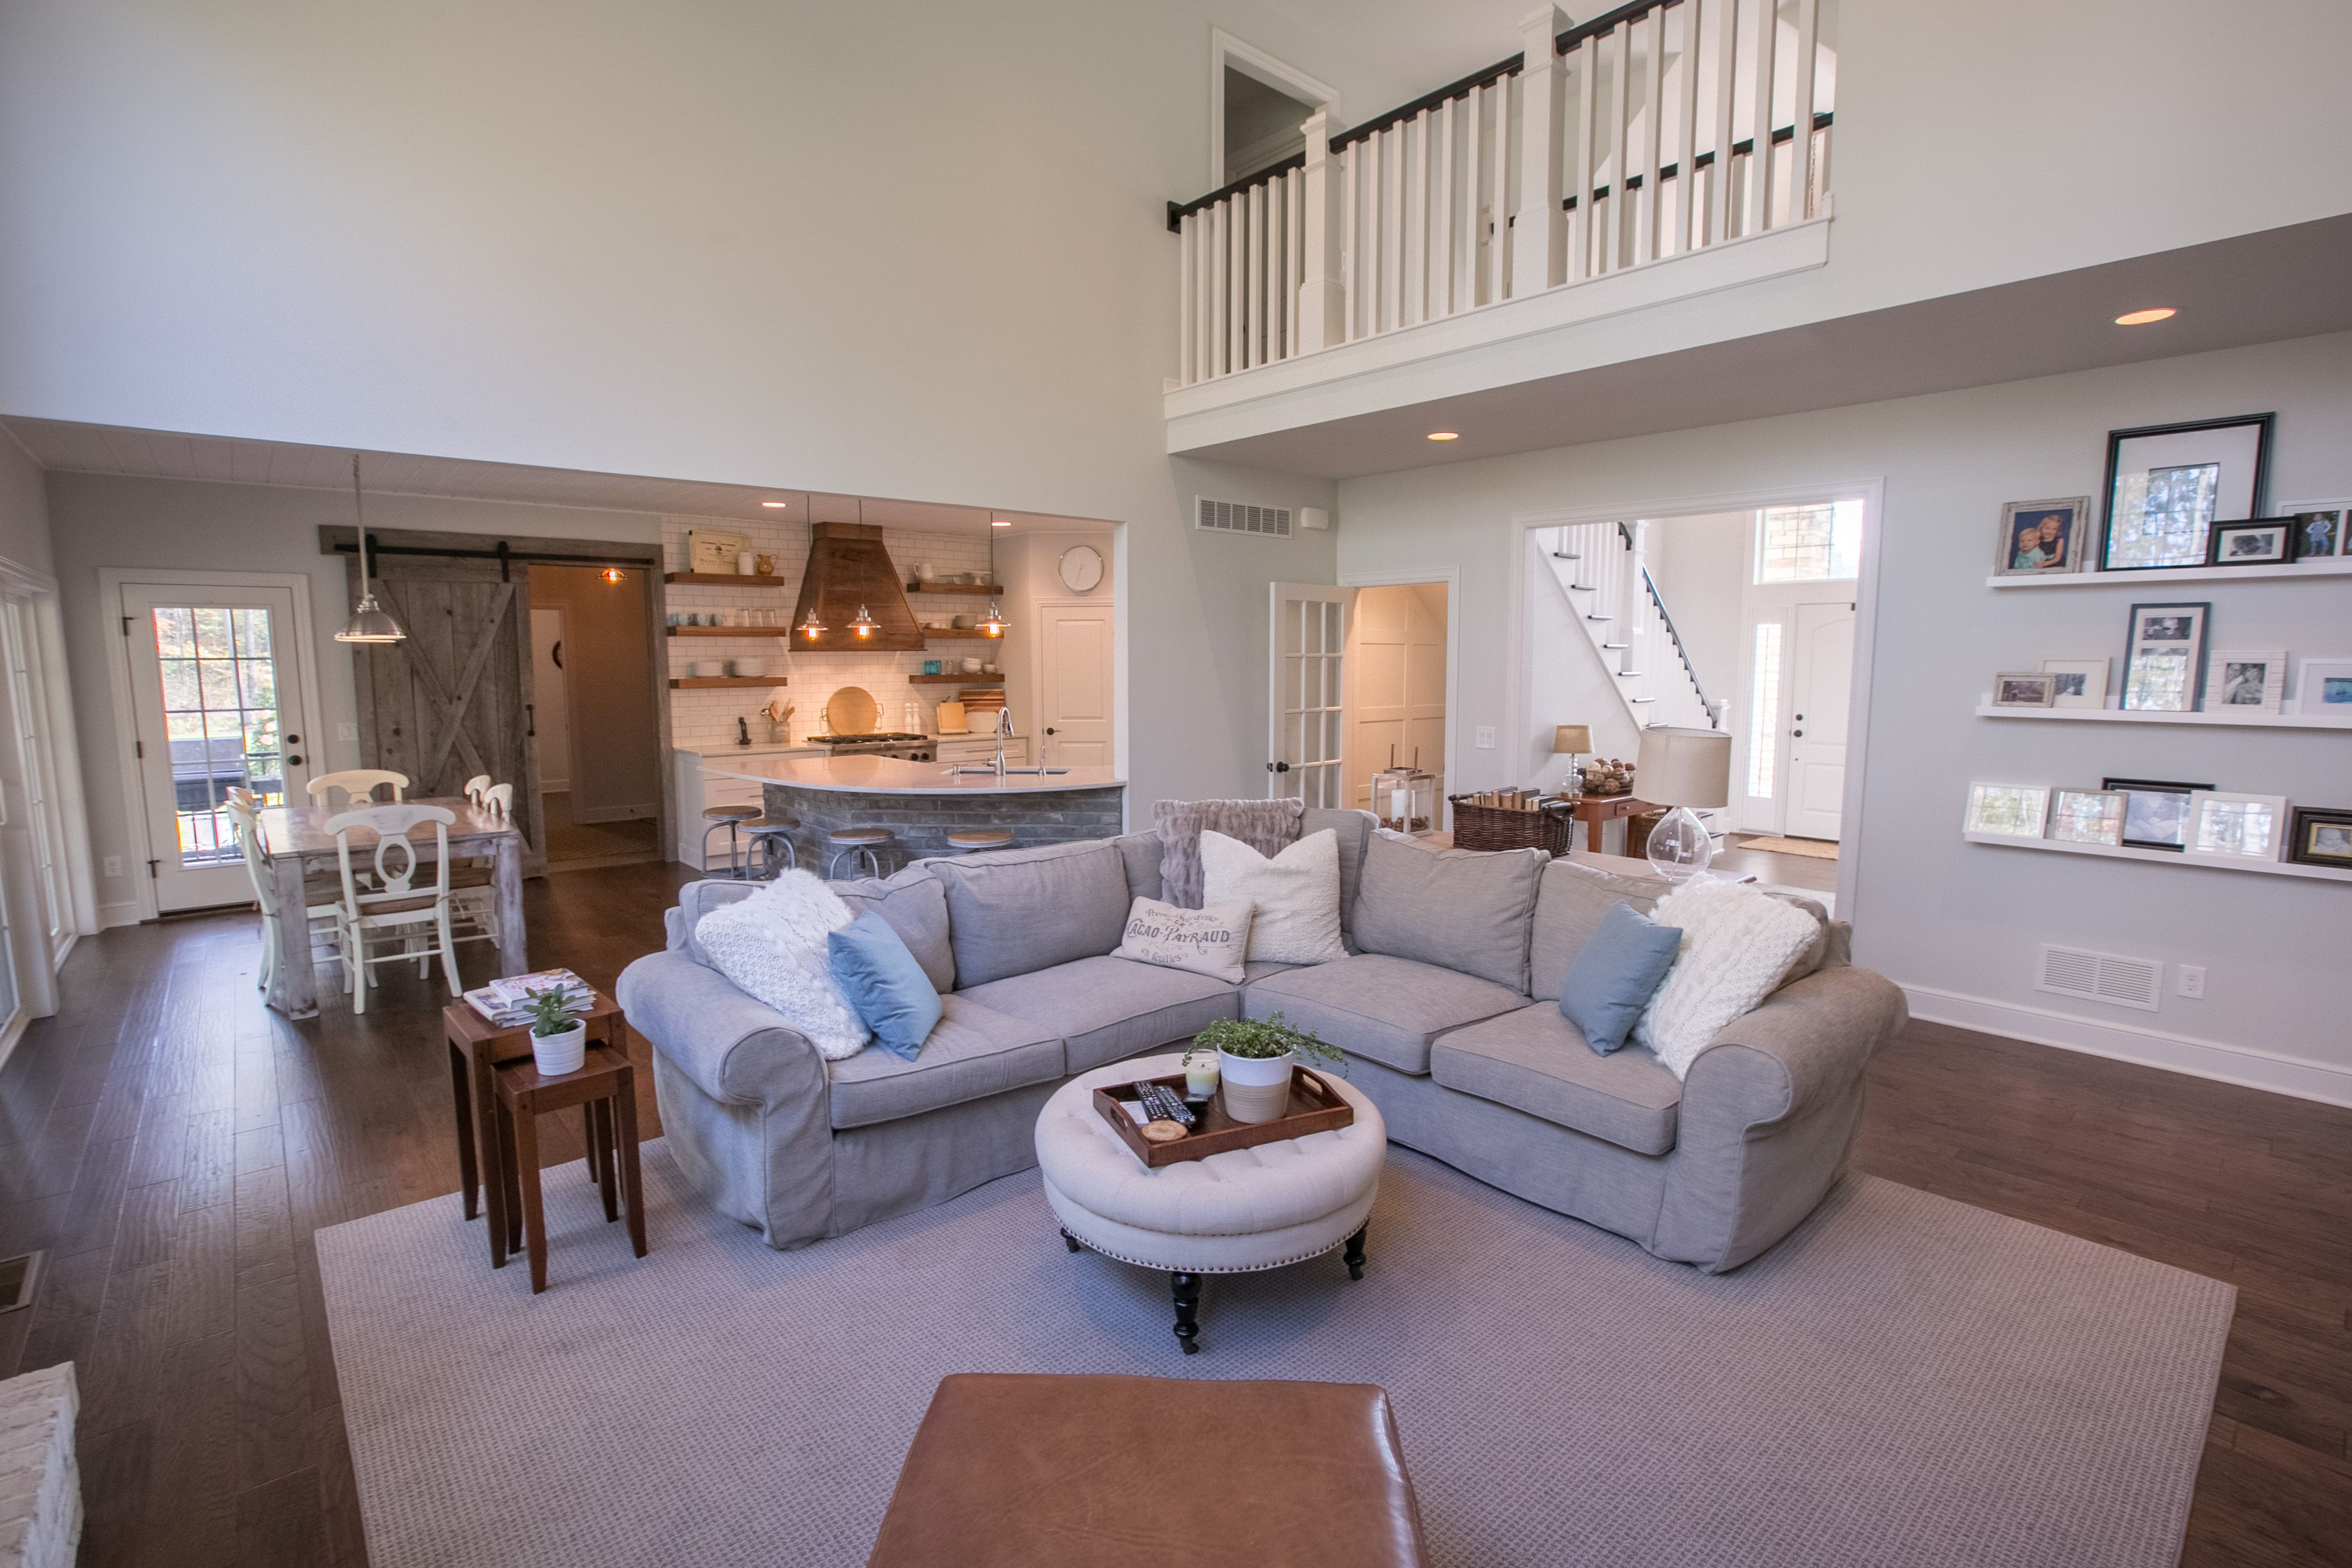 Living Area featured in the Aberdeen C1 By Classic Homes in Akron, OH